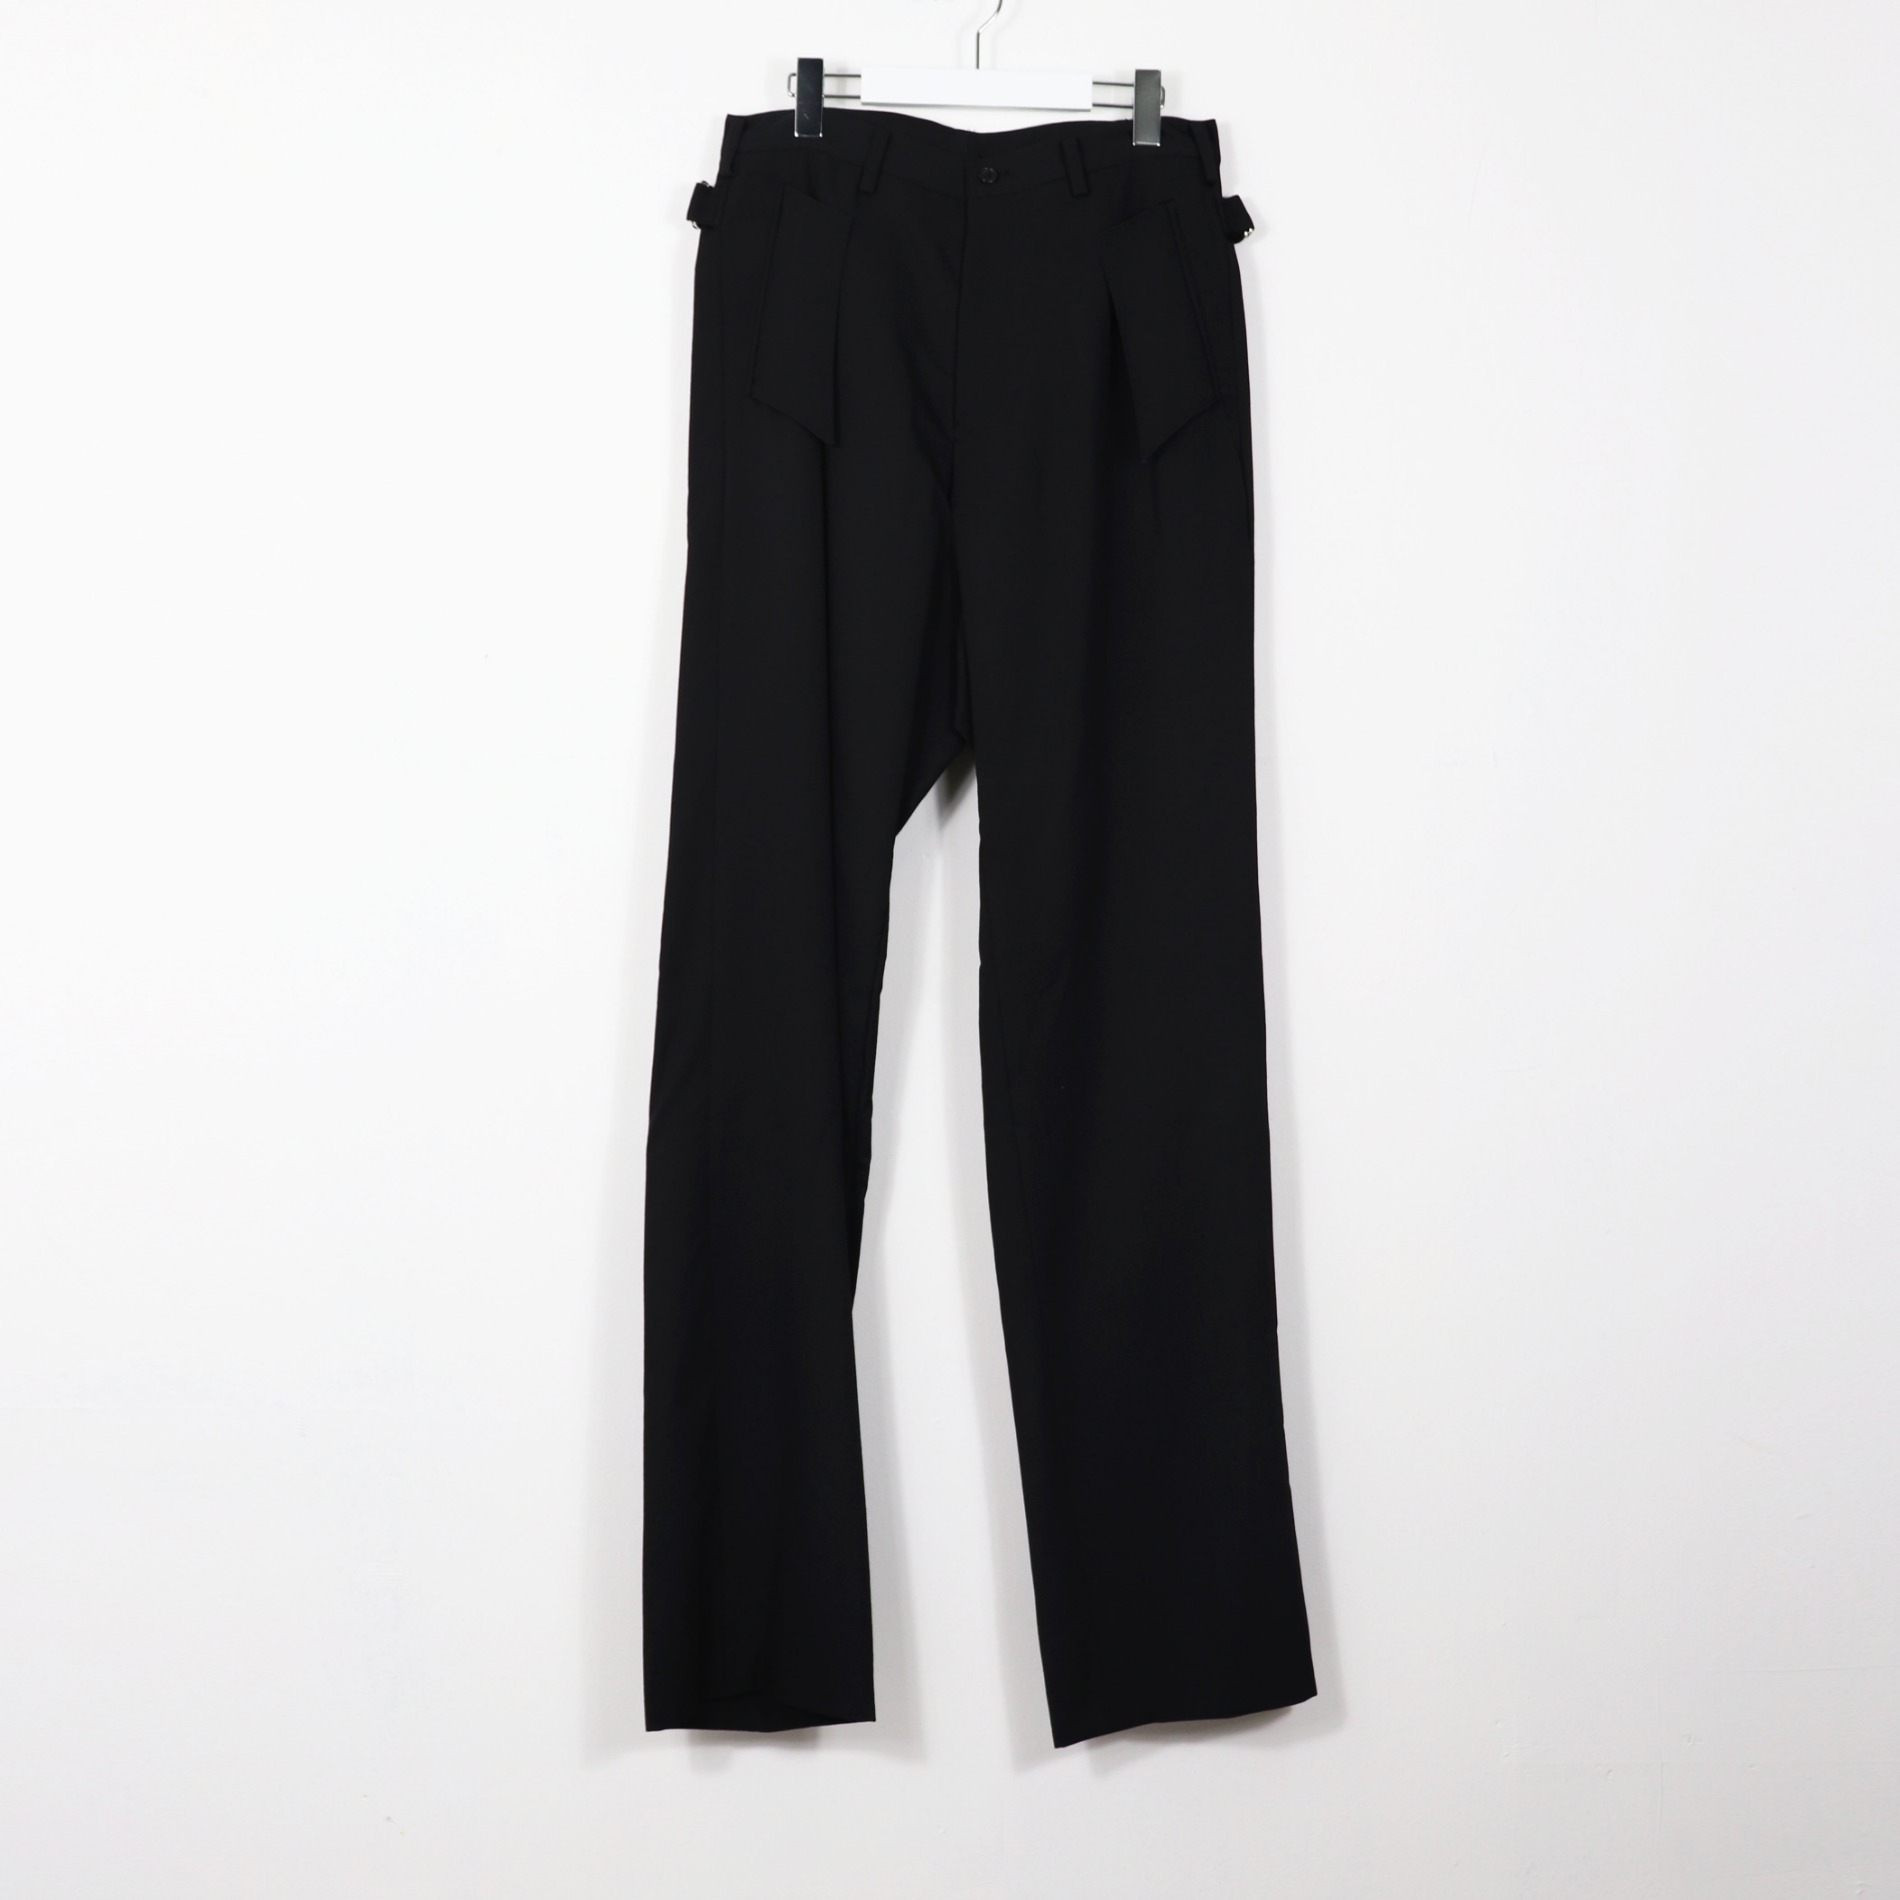 AW20 SULVAM GABARDINE BACK BELT PANTS BLACK